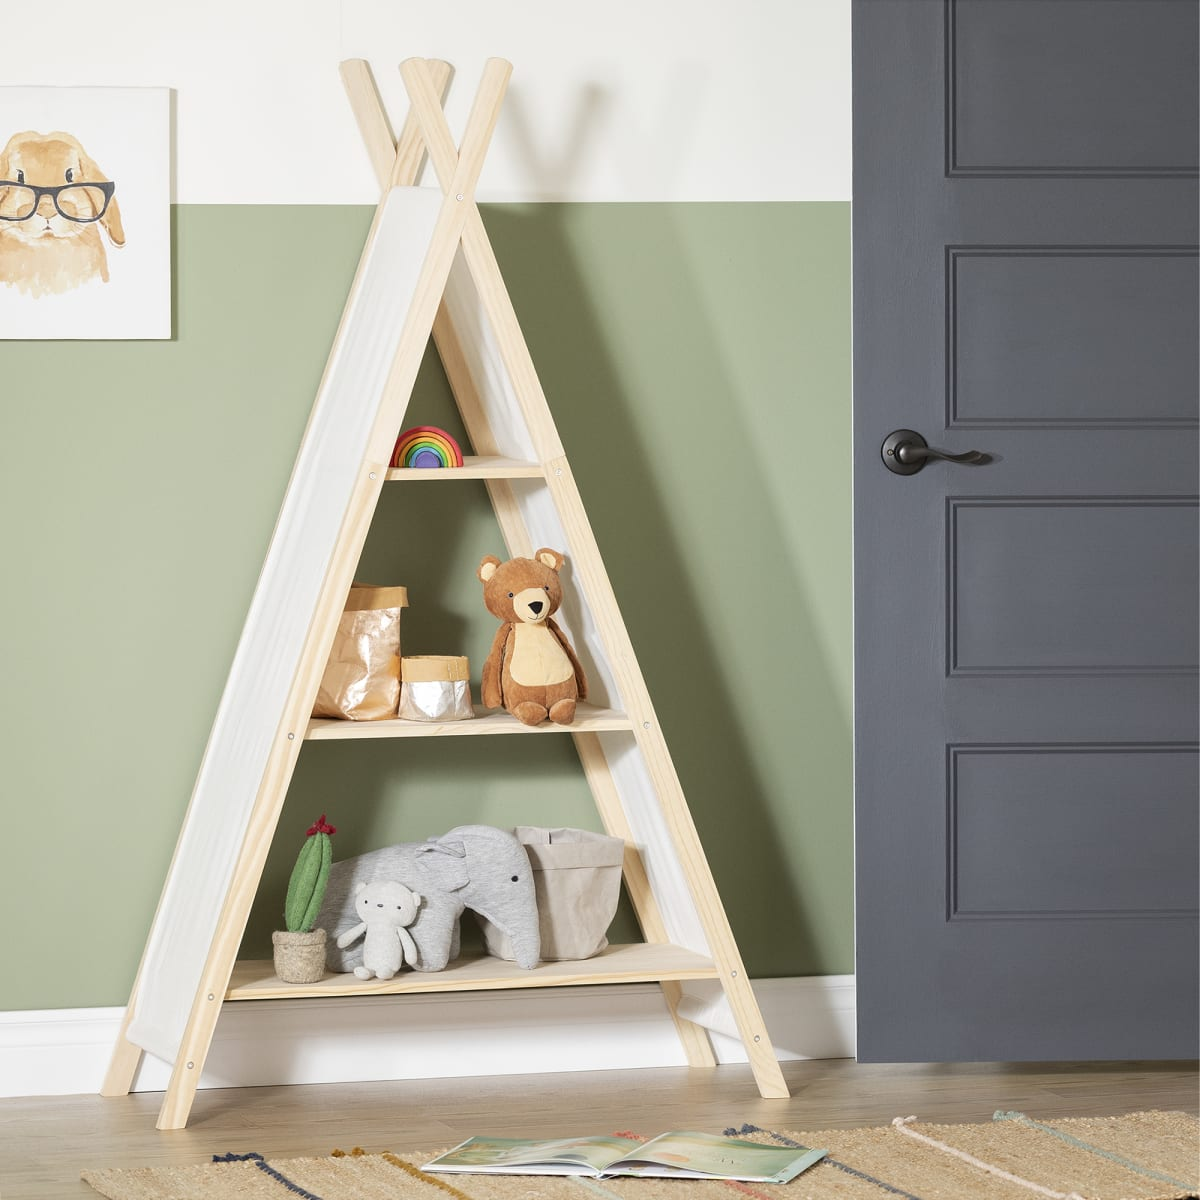 Sweedi Teepee Shelving Unit Play Furniture Playroom Baby And Kids Products South Shore Furniture Us Furniture For Sale Designed And Manufactured In North America